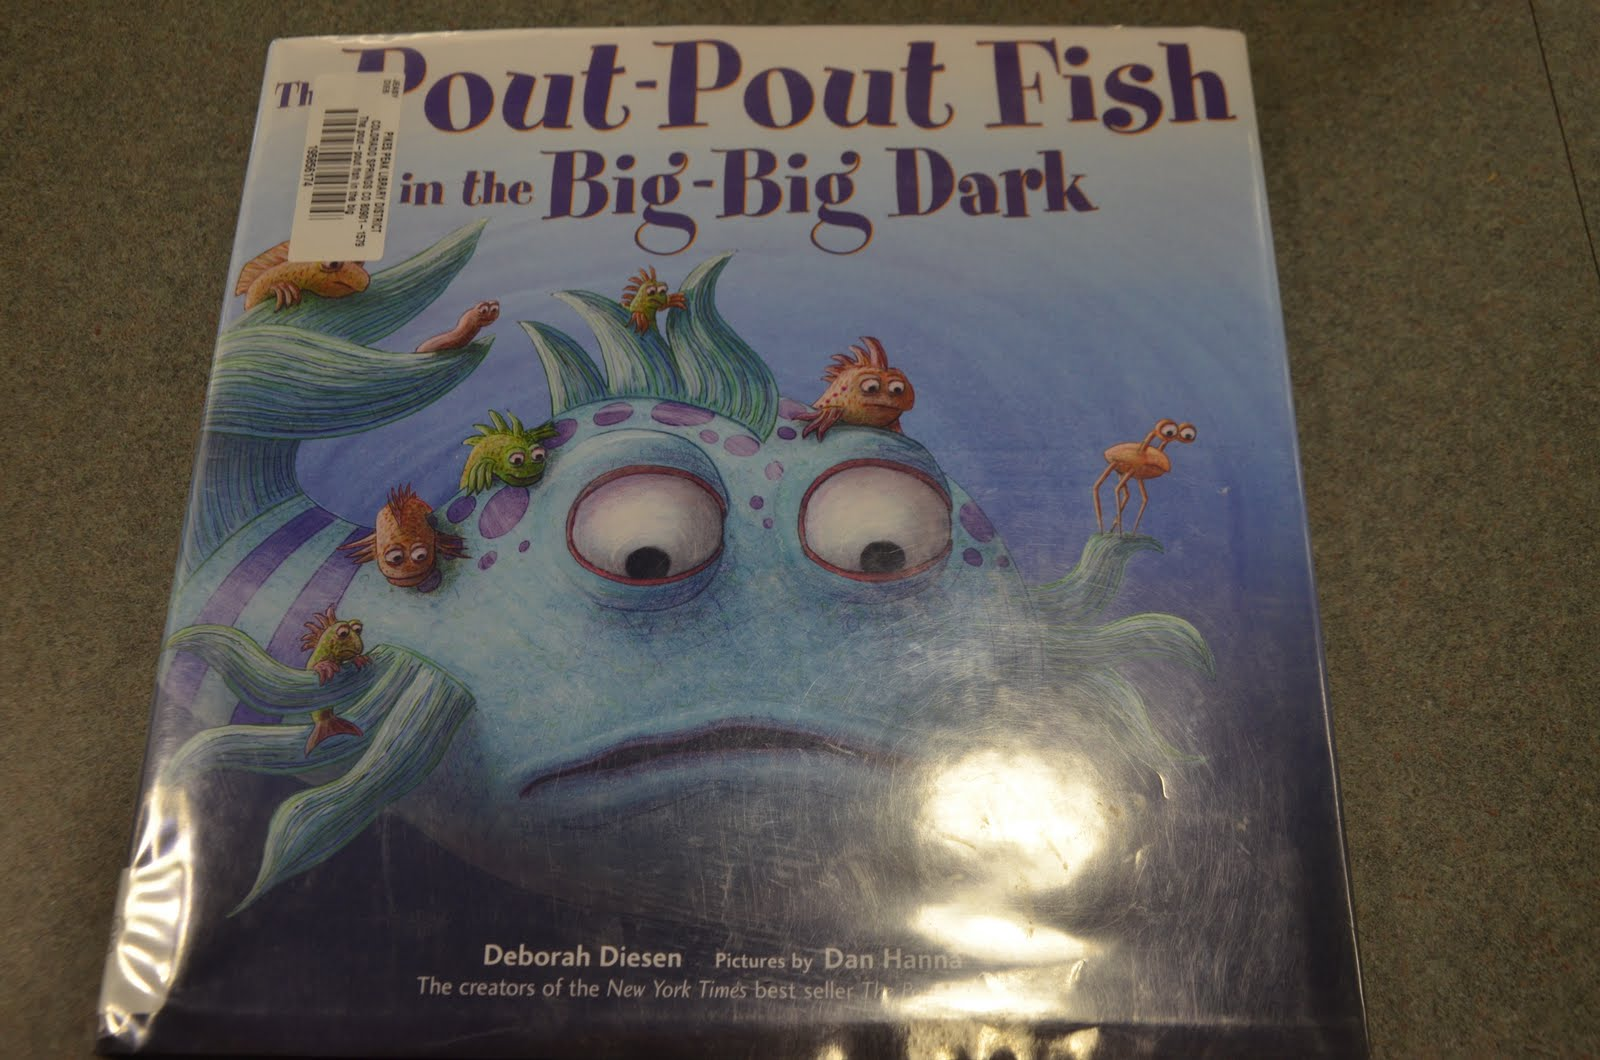 Mrs archer 39 s book notes blog archive the pout pout for The pout pout fish in the big big dark